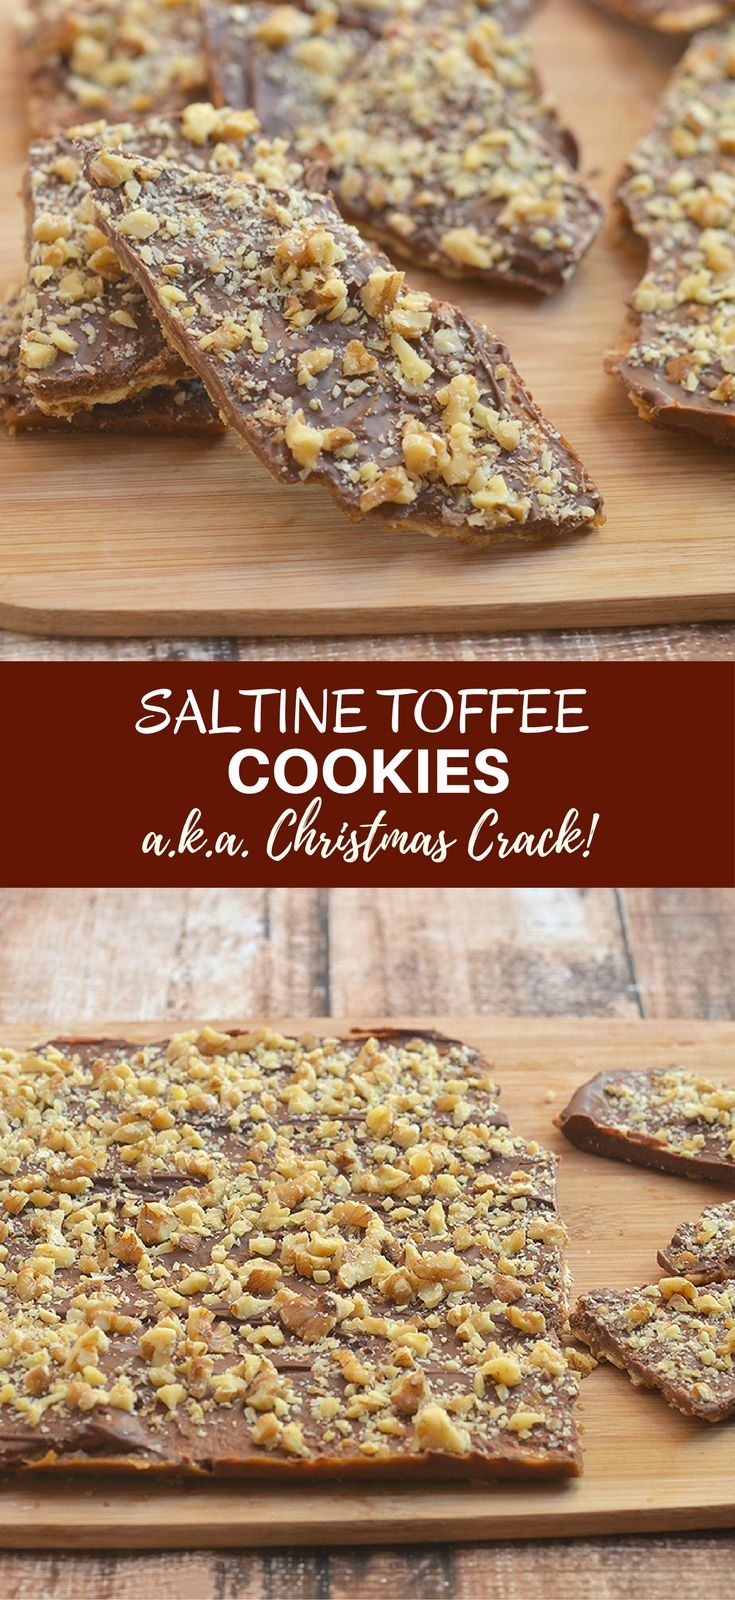 Saltine Toffee Cookies are crunchy, buttery and absolutely addicting. A delicious combination of sweet and salty, they're also called Christmas Crack for good reason!  via @lalainespins